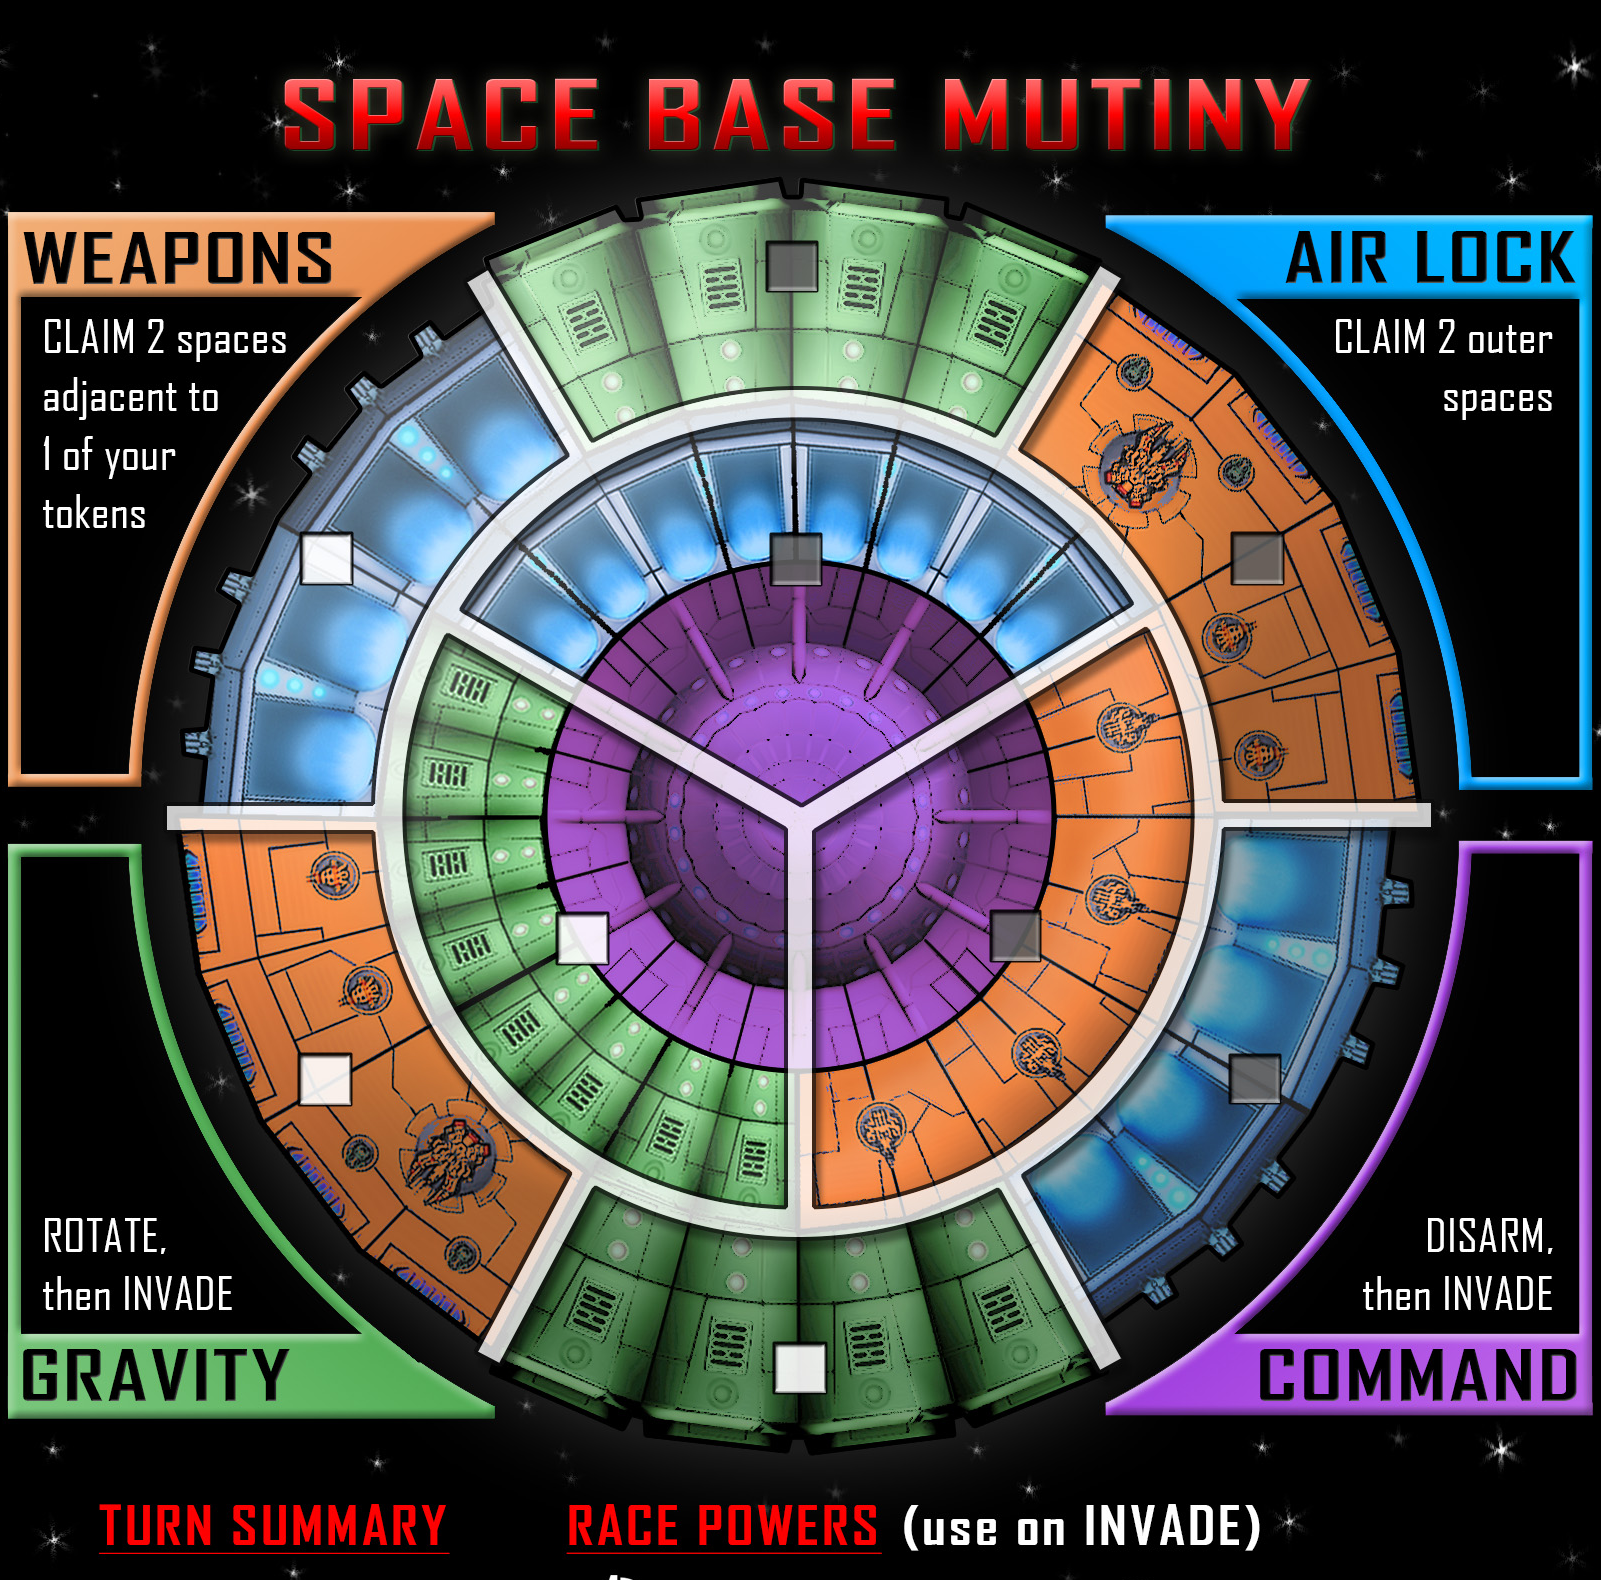 Space Base Mutiny